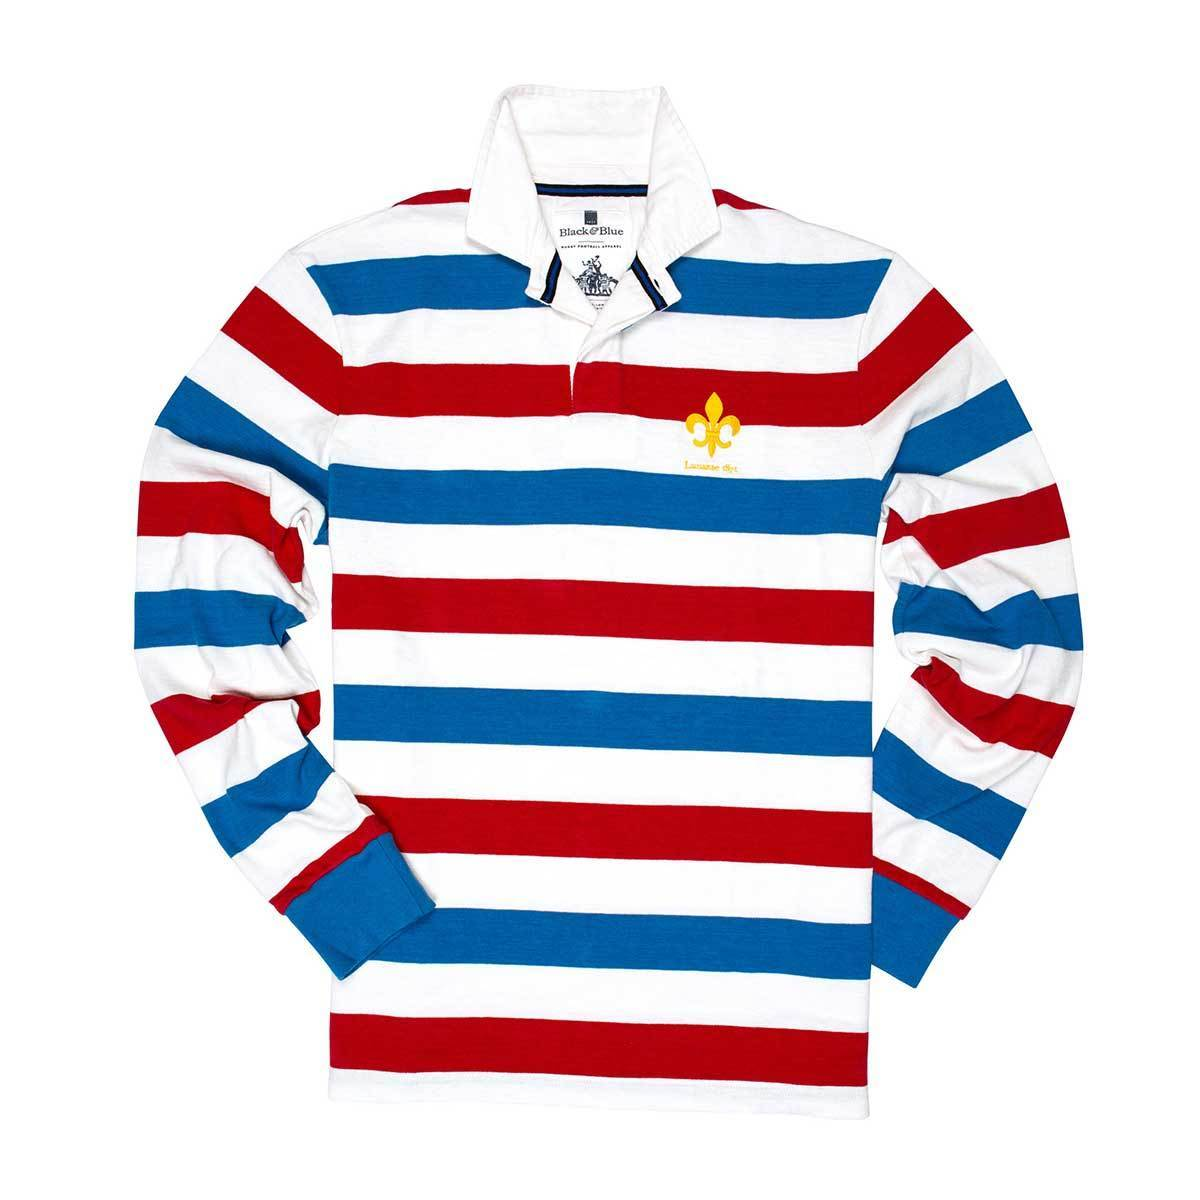 Black & Blue 1871 | Lausanne 1871 Rugby Shirt | Heavy Cotton Rugby Shirt